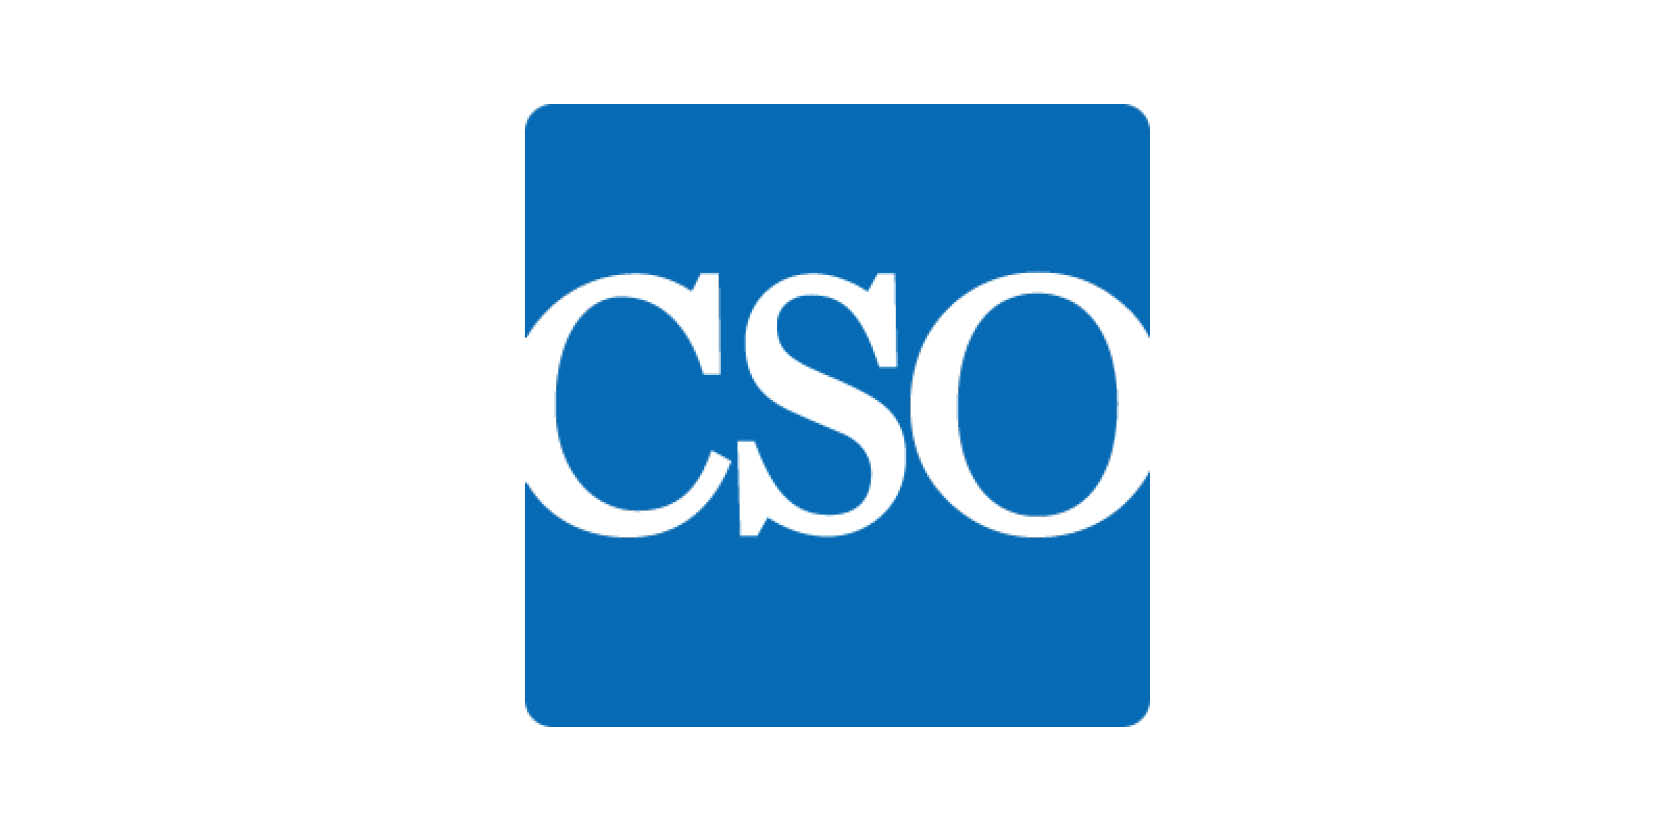 CSOOnline: An online market that offered cheap hacked servers returns